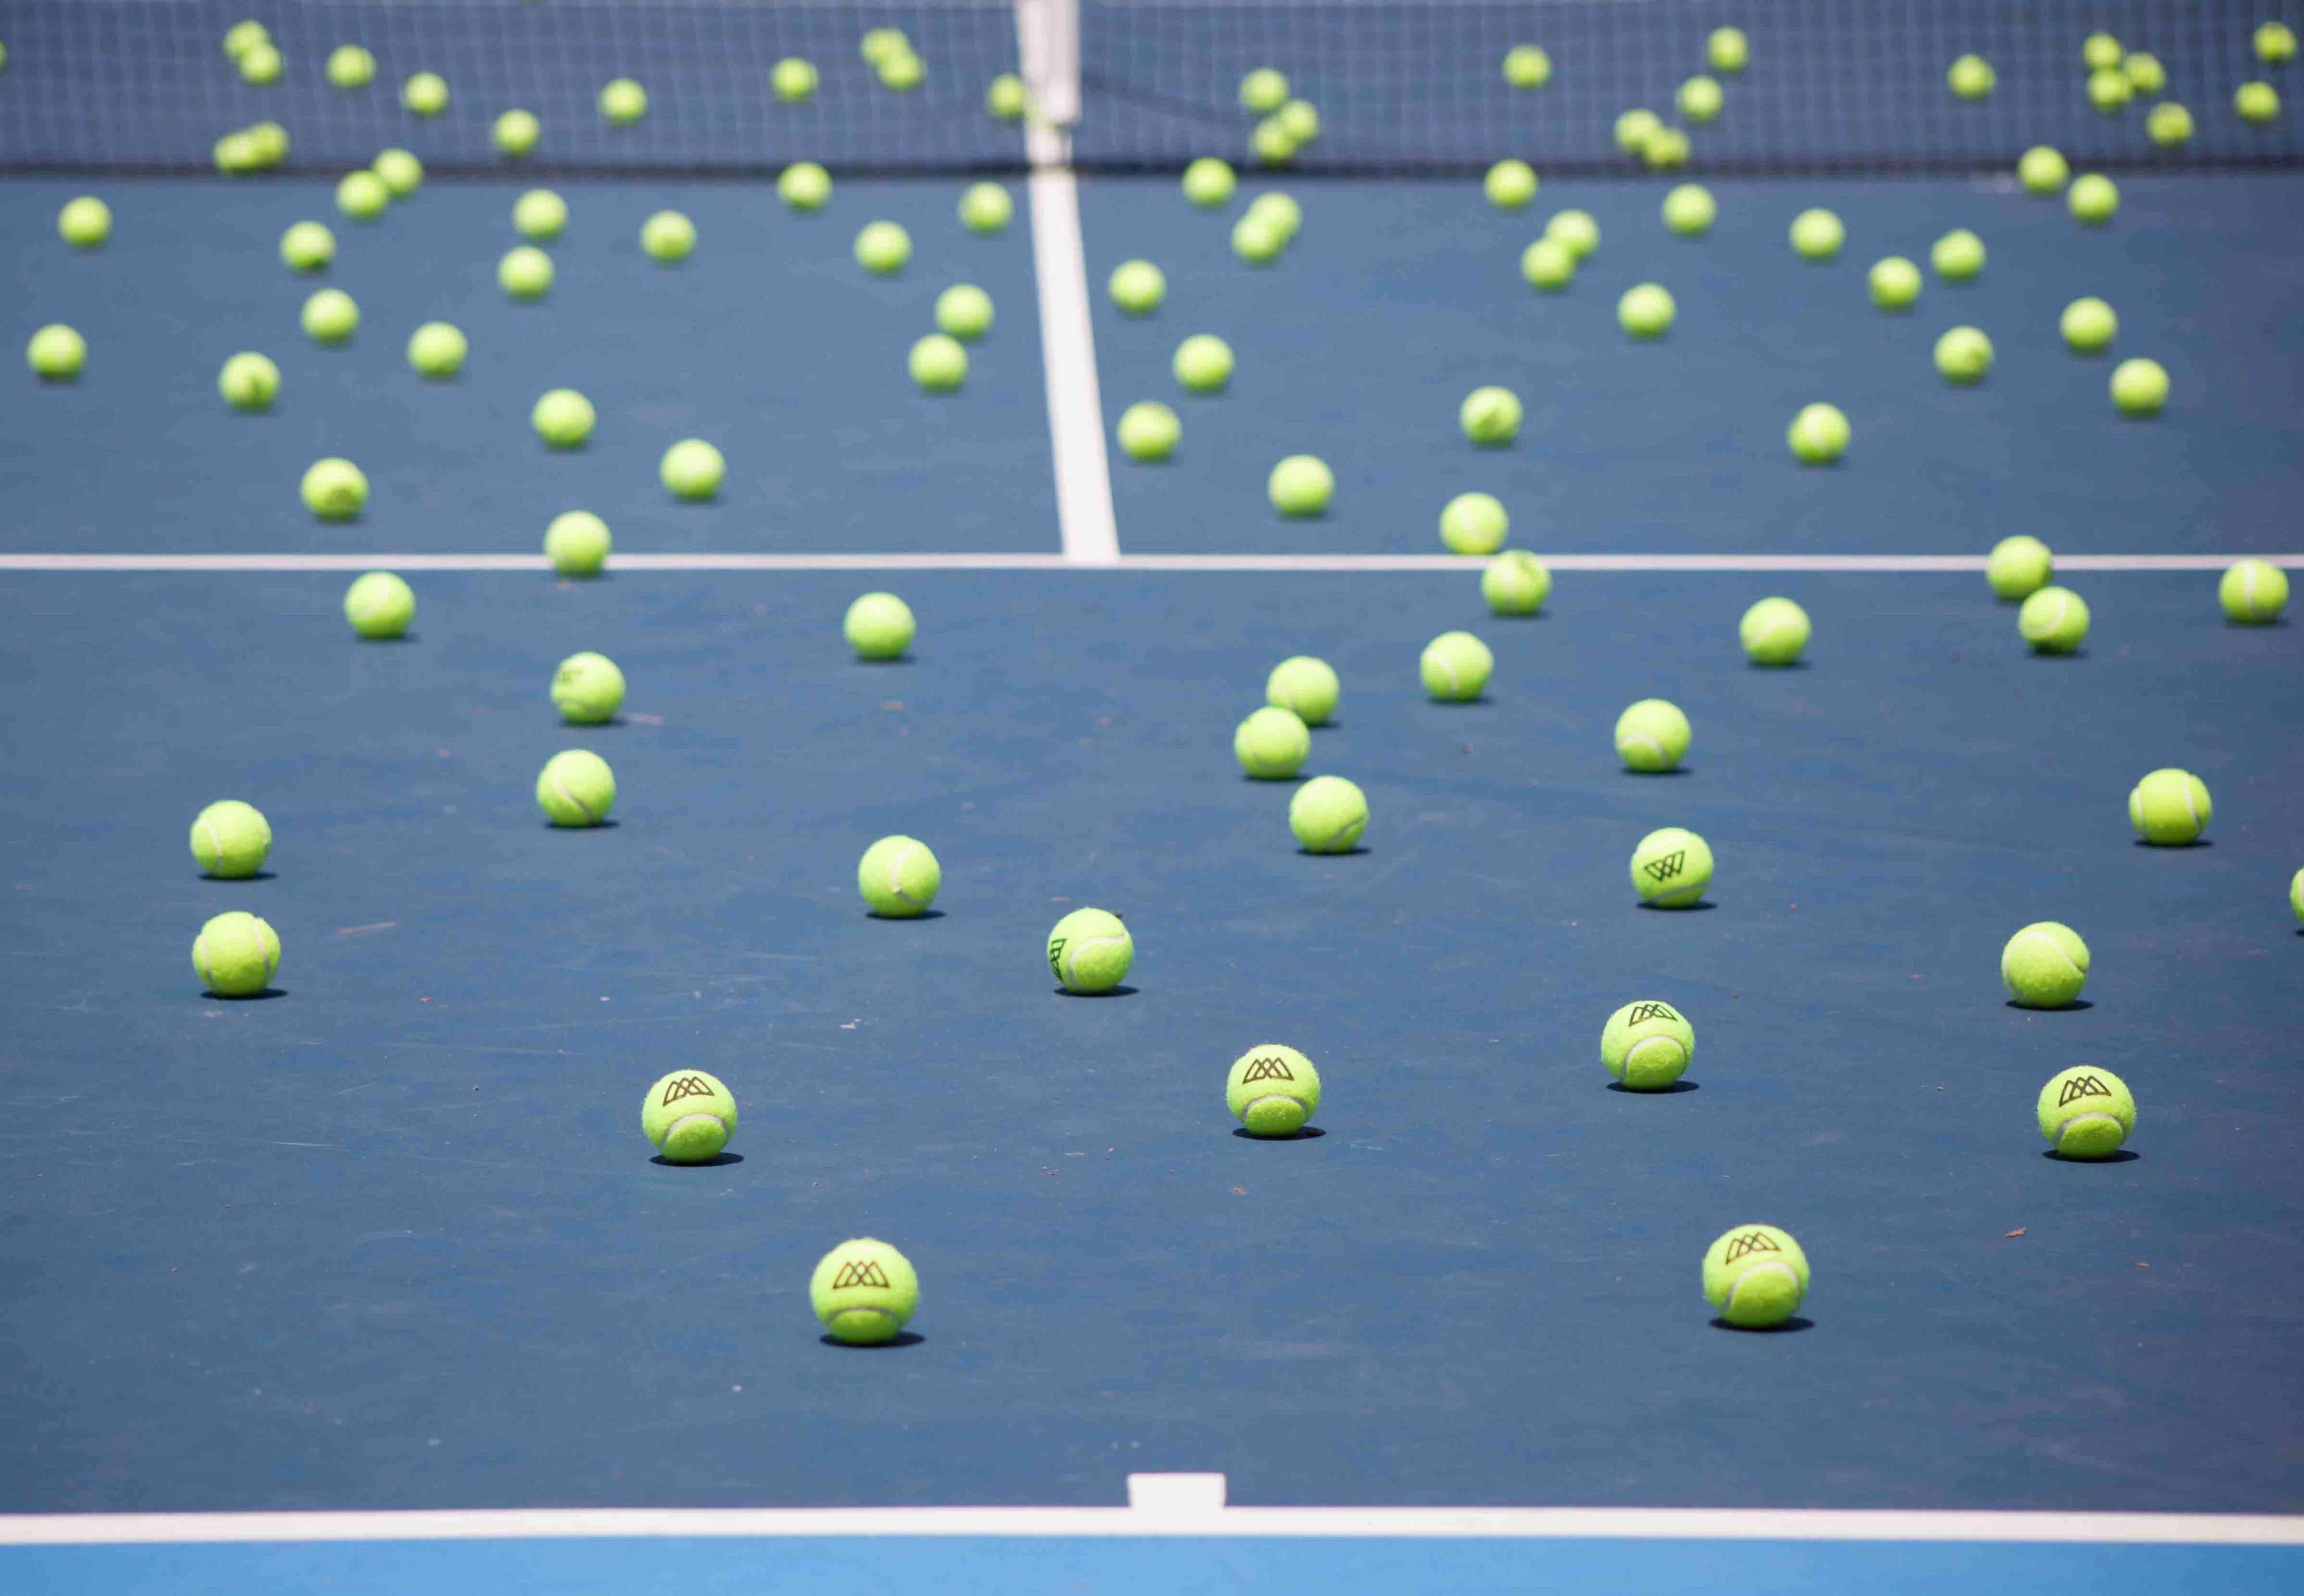 Many tennis balls on the ground